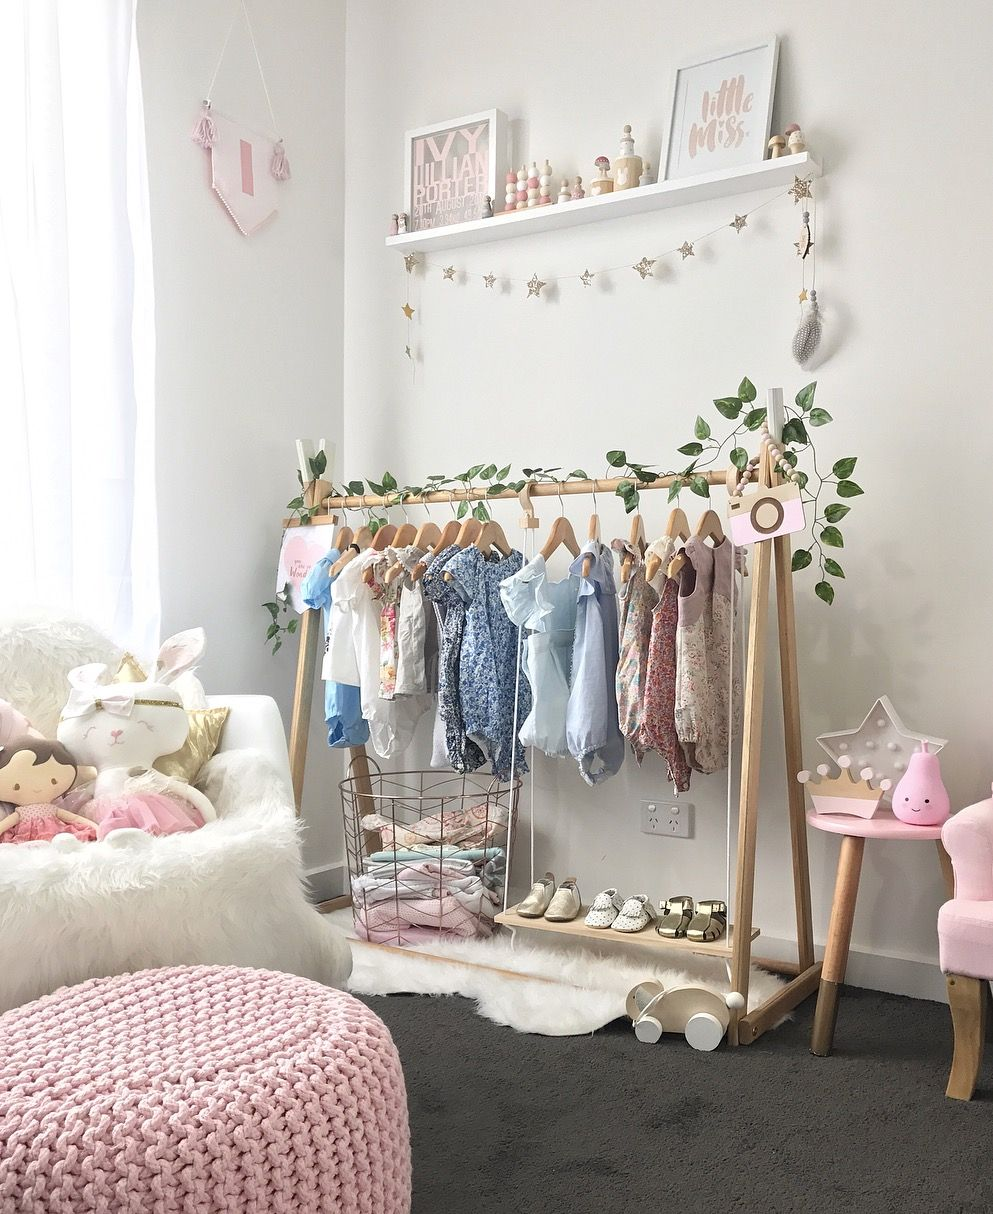 Ivy\'s Room: A Beautifully Bright and Airy Nursery | Habitaciones ...